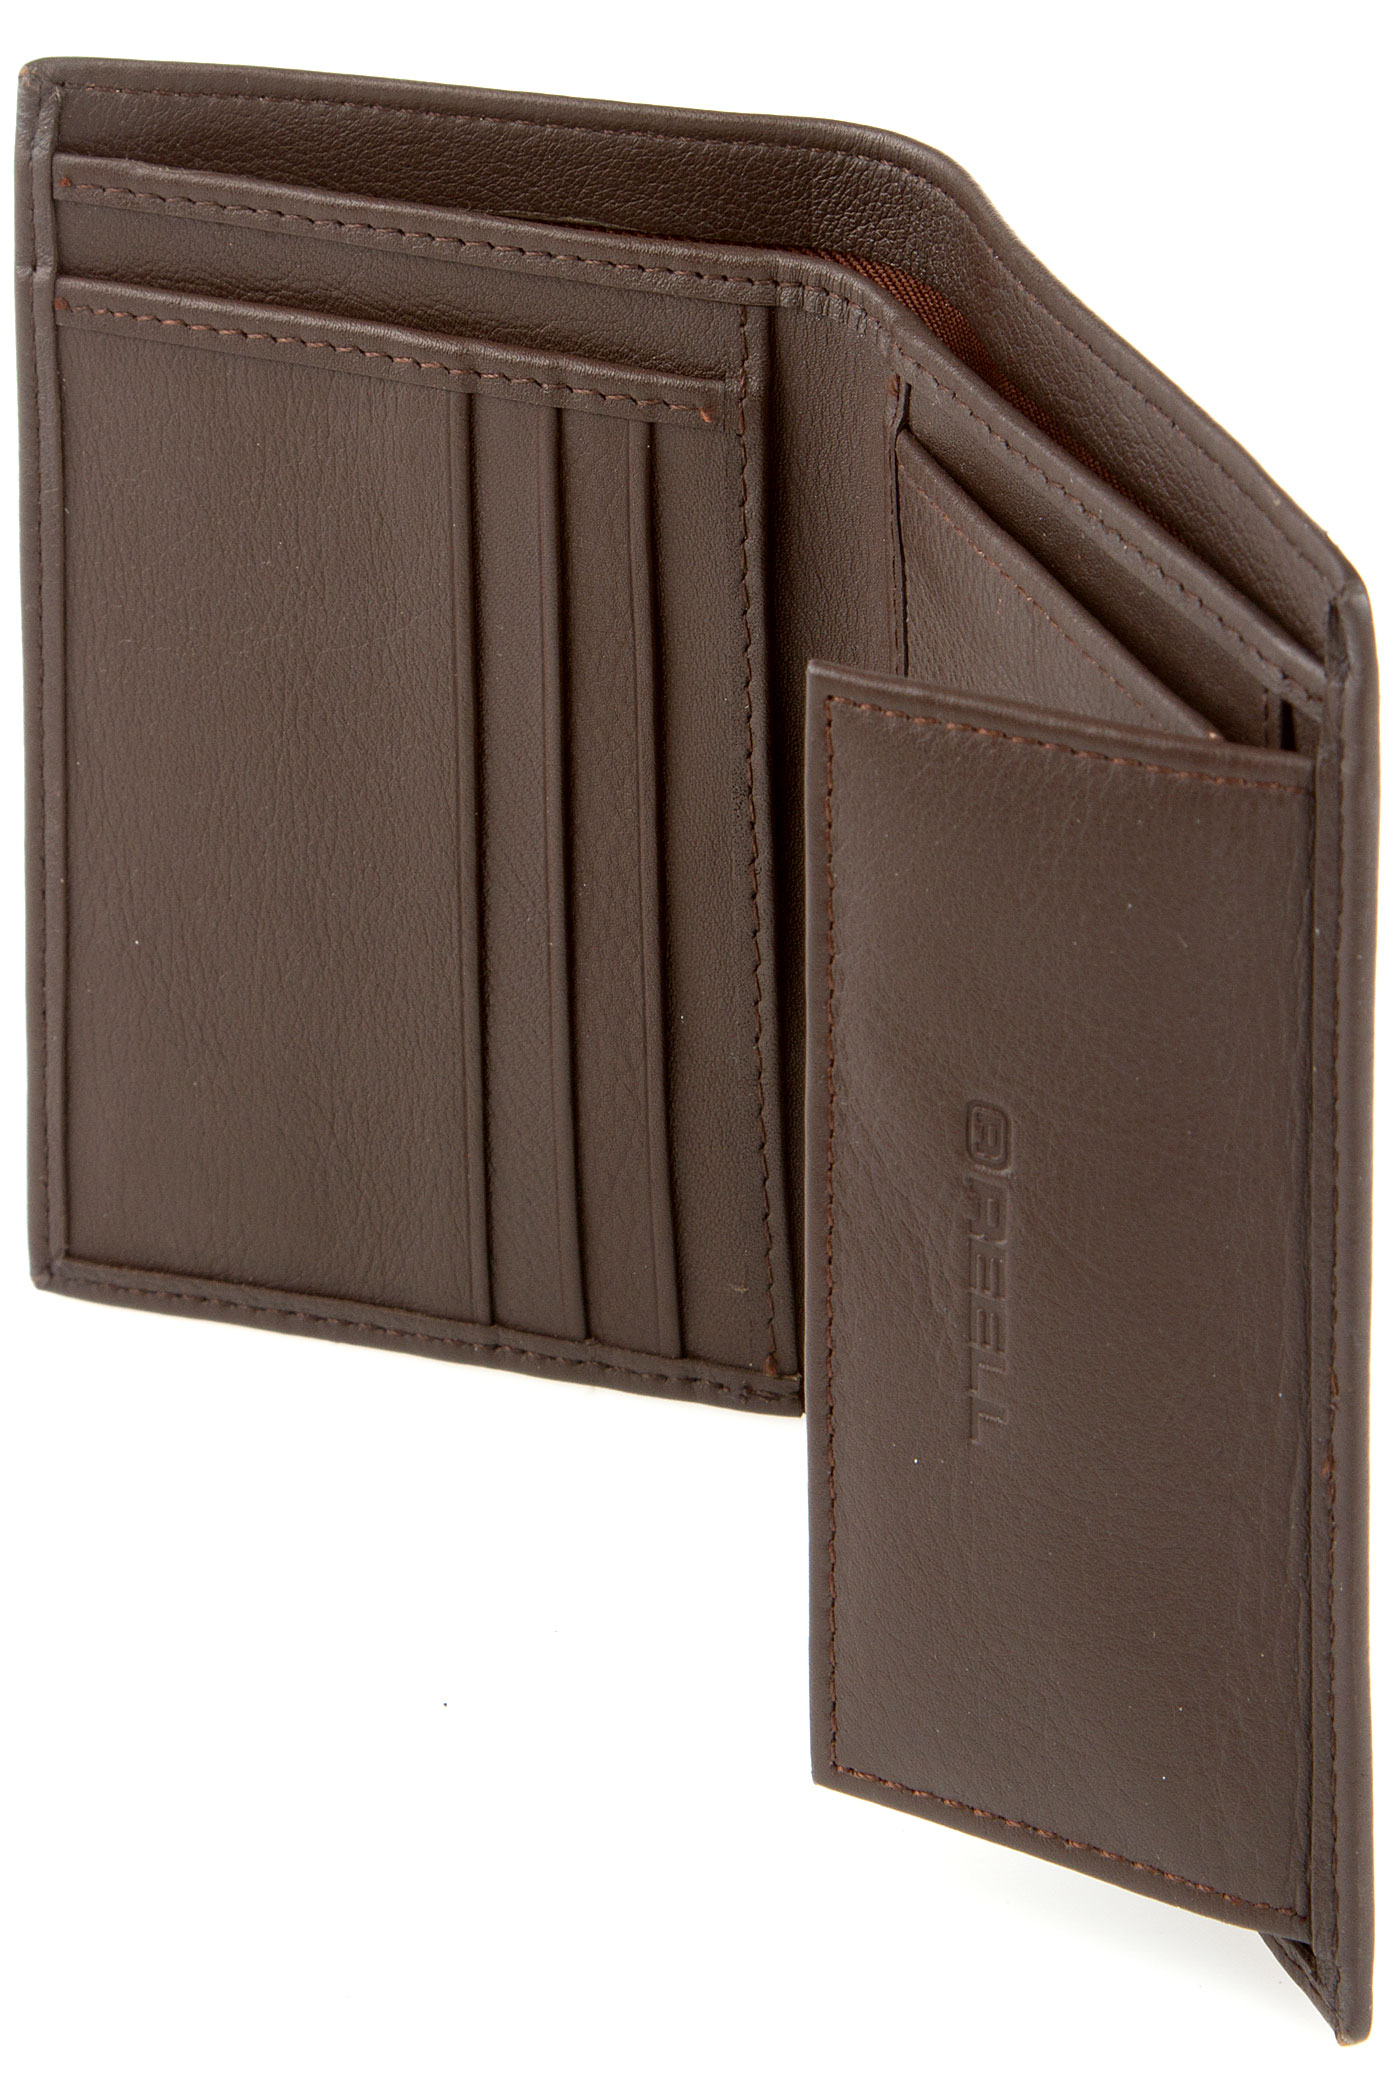 Clean Leather Wallet - Best Photo Wallet Justiceforkenny.Org a71c158f2fd0